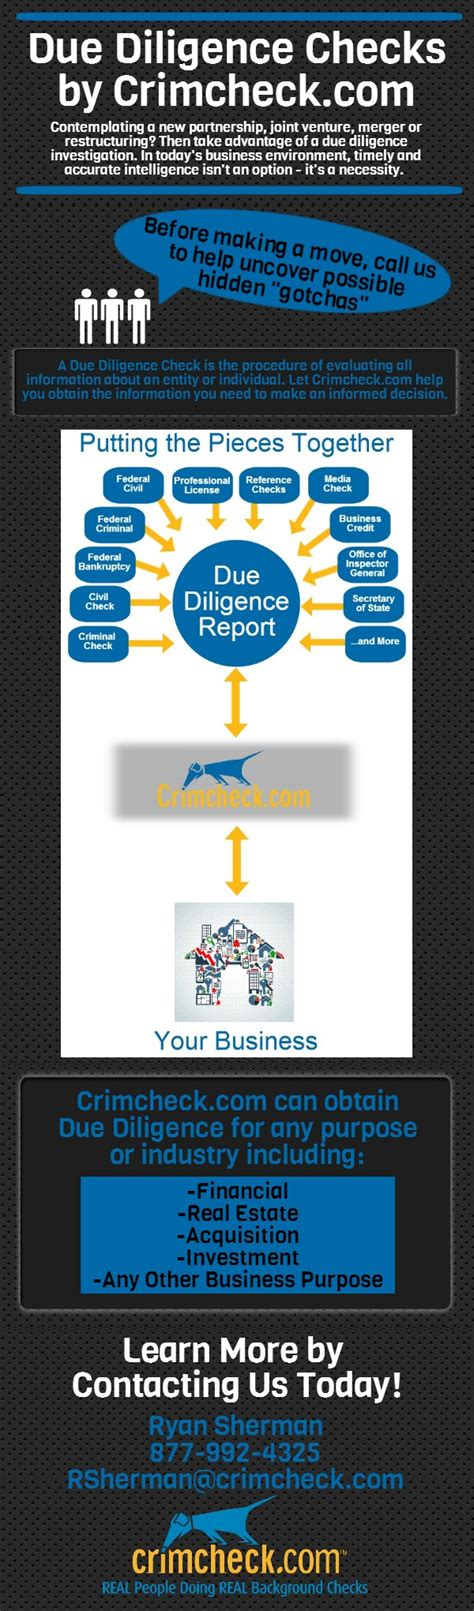 Due Diligence Background Check Infographics Background Checks Employment Screening Services